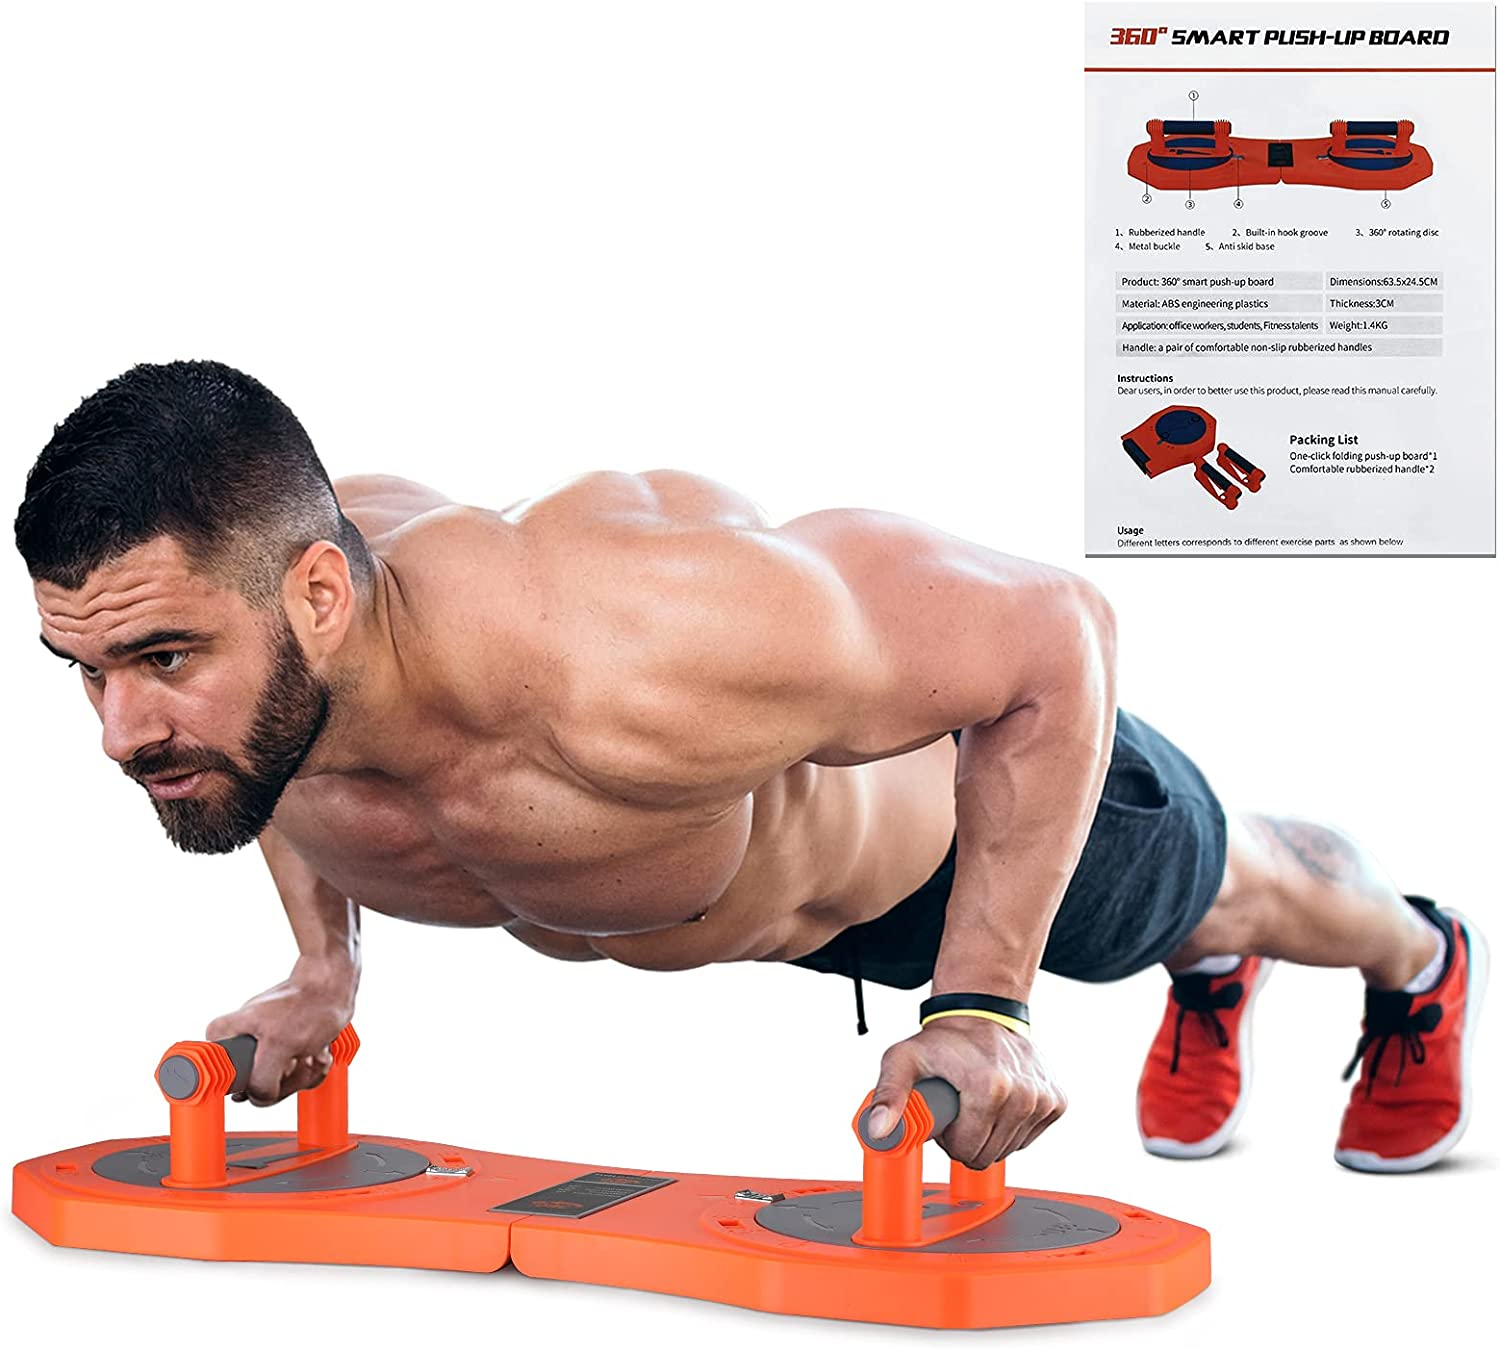 Max 78% OFF O-CONN 360° Rotatable Push Up Board -The Equi Workout Perfect Genuine